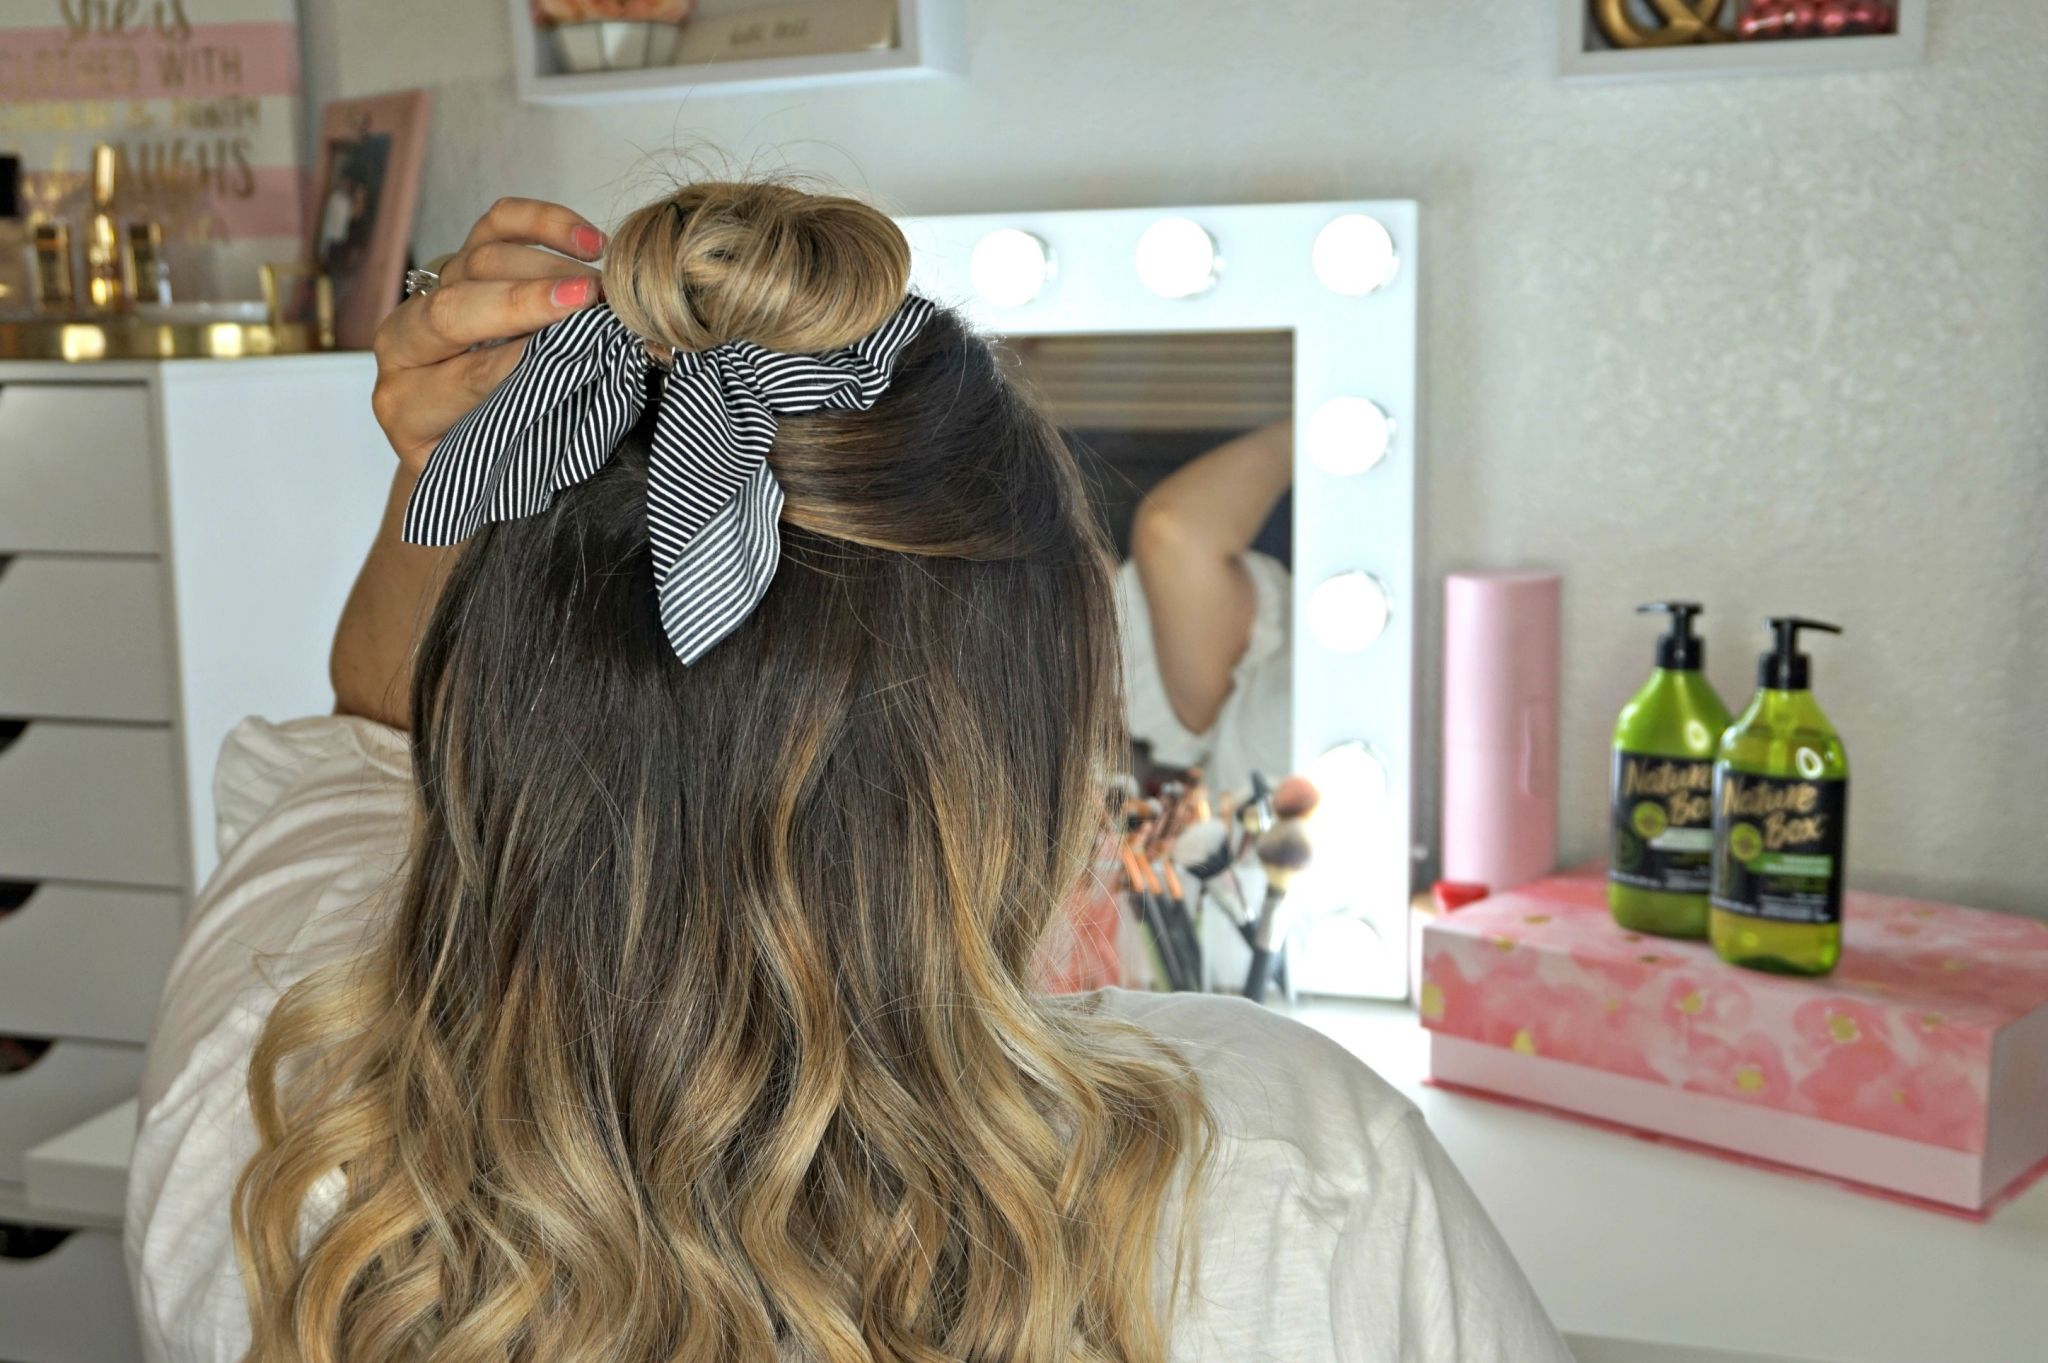 How To Rock Hair Accessories // Trend To Try // Hair Accessories // Hairstyles for Hair Accessories // Hairstyles for Medium Length Hair // Hairstyles for Long Hair // How To Style Bangs // Balayage Hair // Nature Box | Beauty With Lily #ad